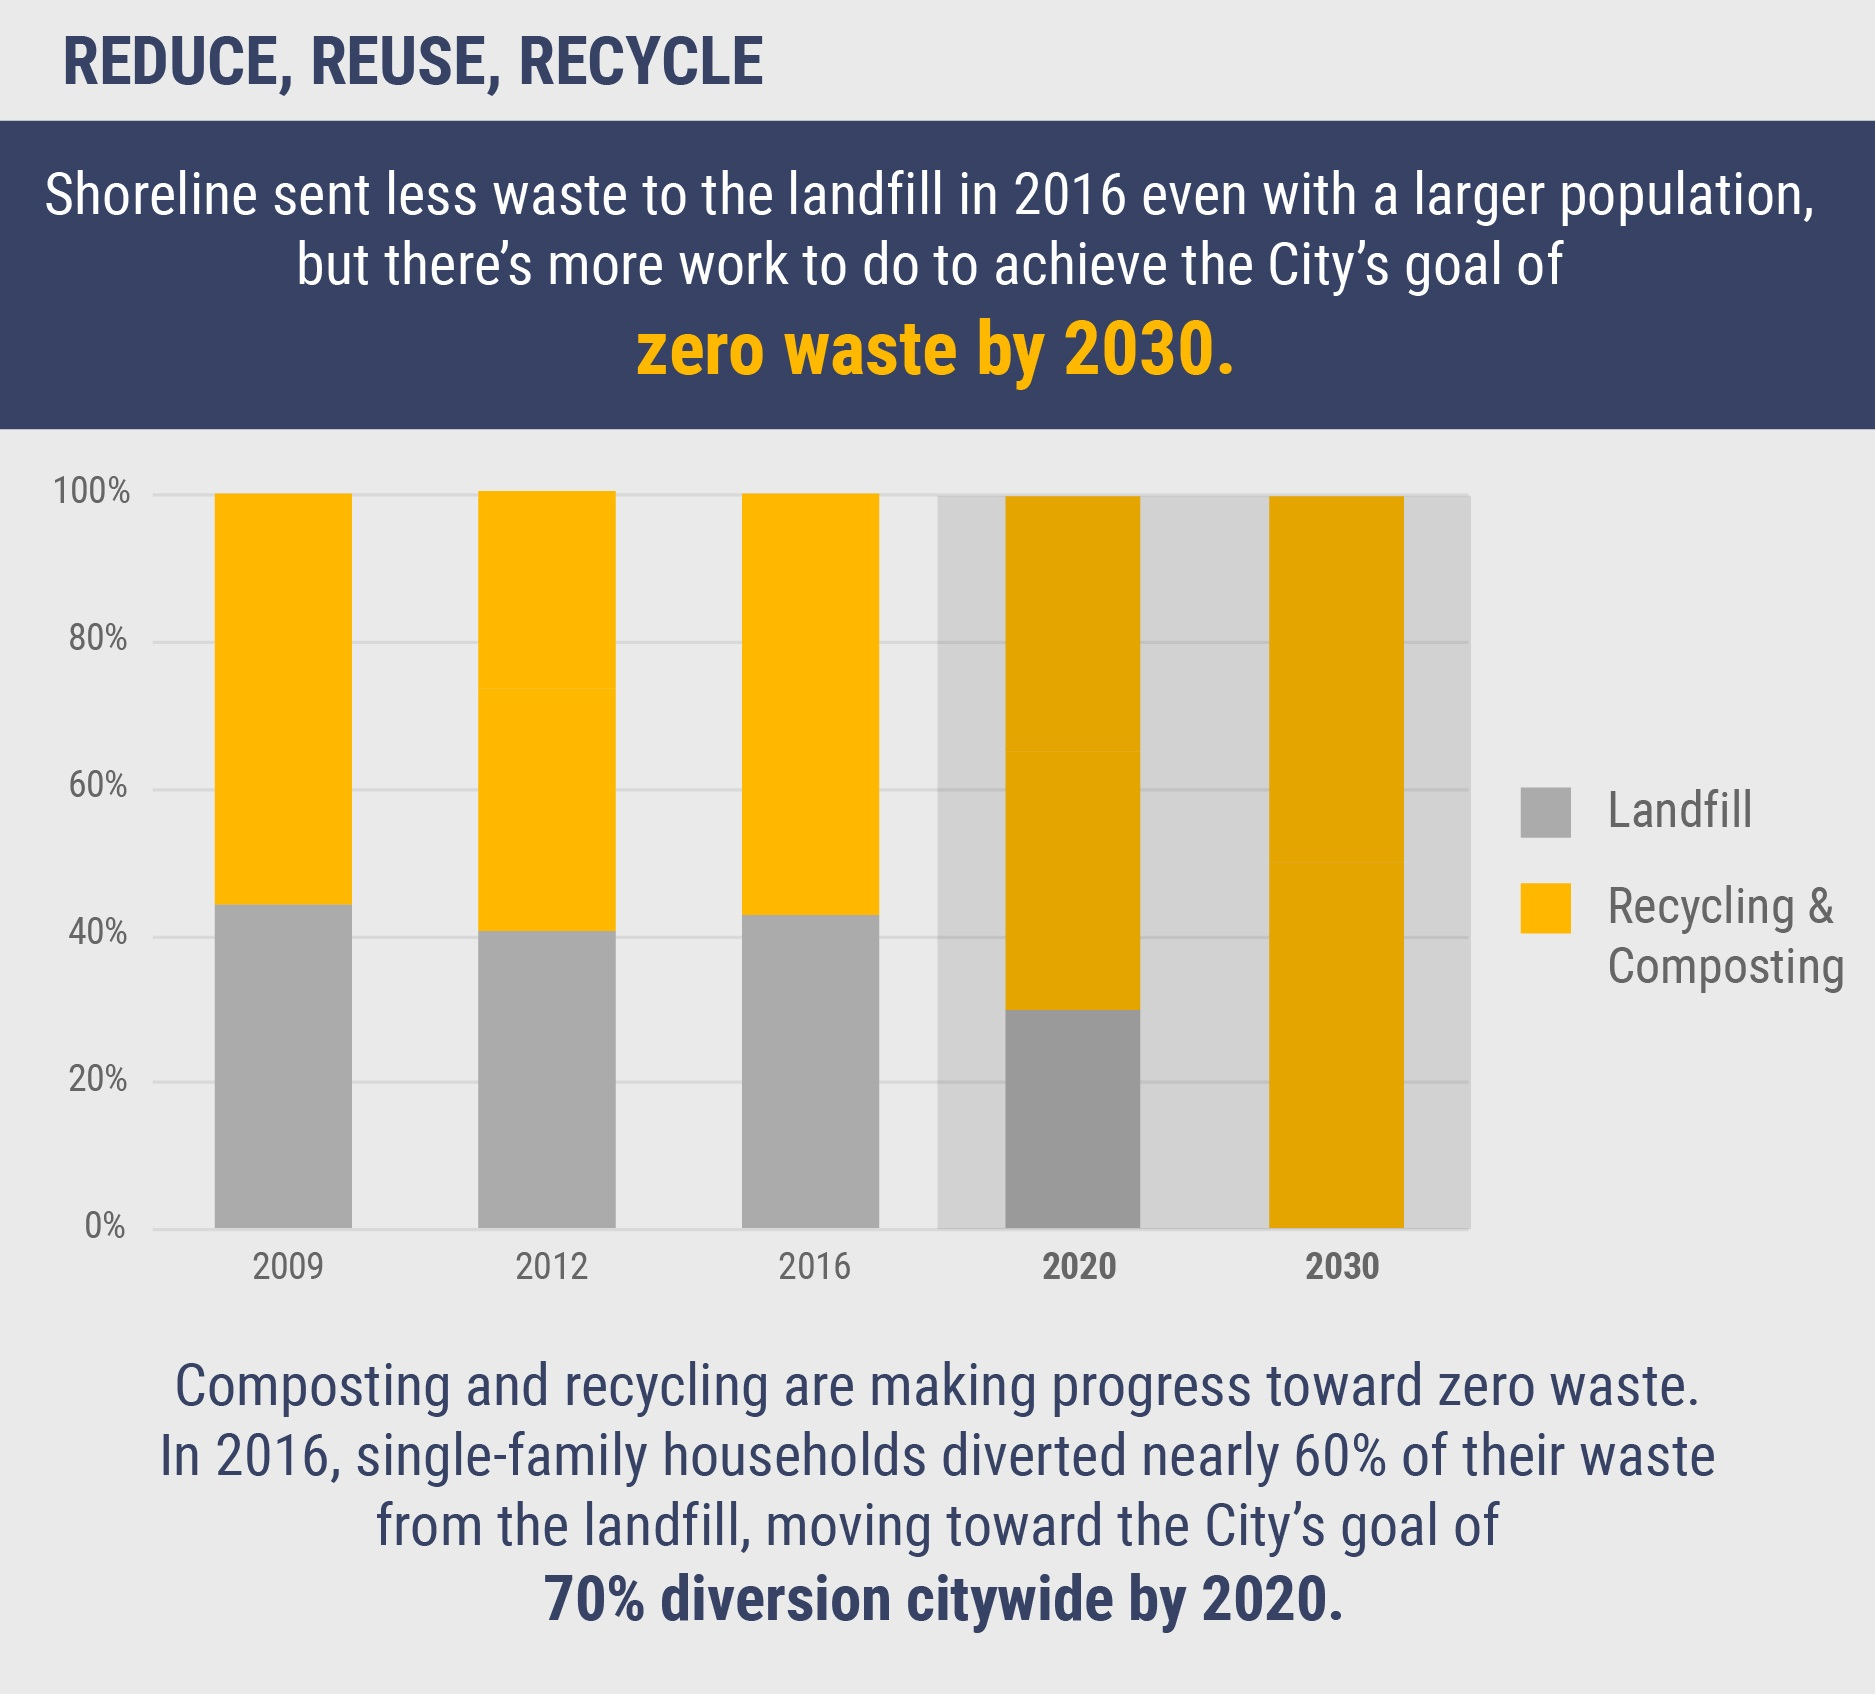 Shoreline sent 19 tons of waste to the landfill in 2016, a reduction from 2009 despite population growth. The City has a goal of zero waste by 2030. In 2016, single-family households diverted about 60% of their waste from the landfill, nearing the City's goal of 70% diversion citywide by 2020.